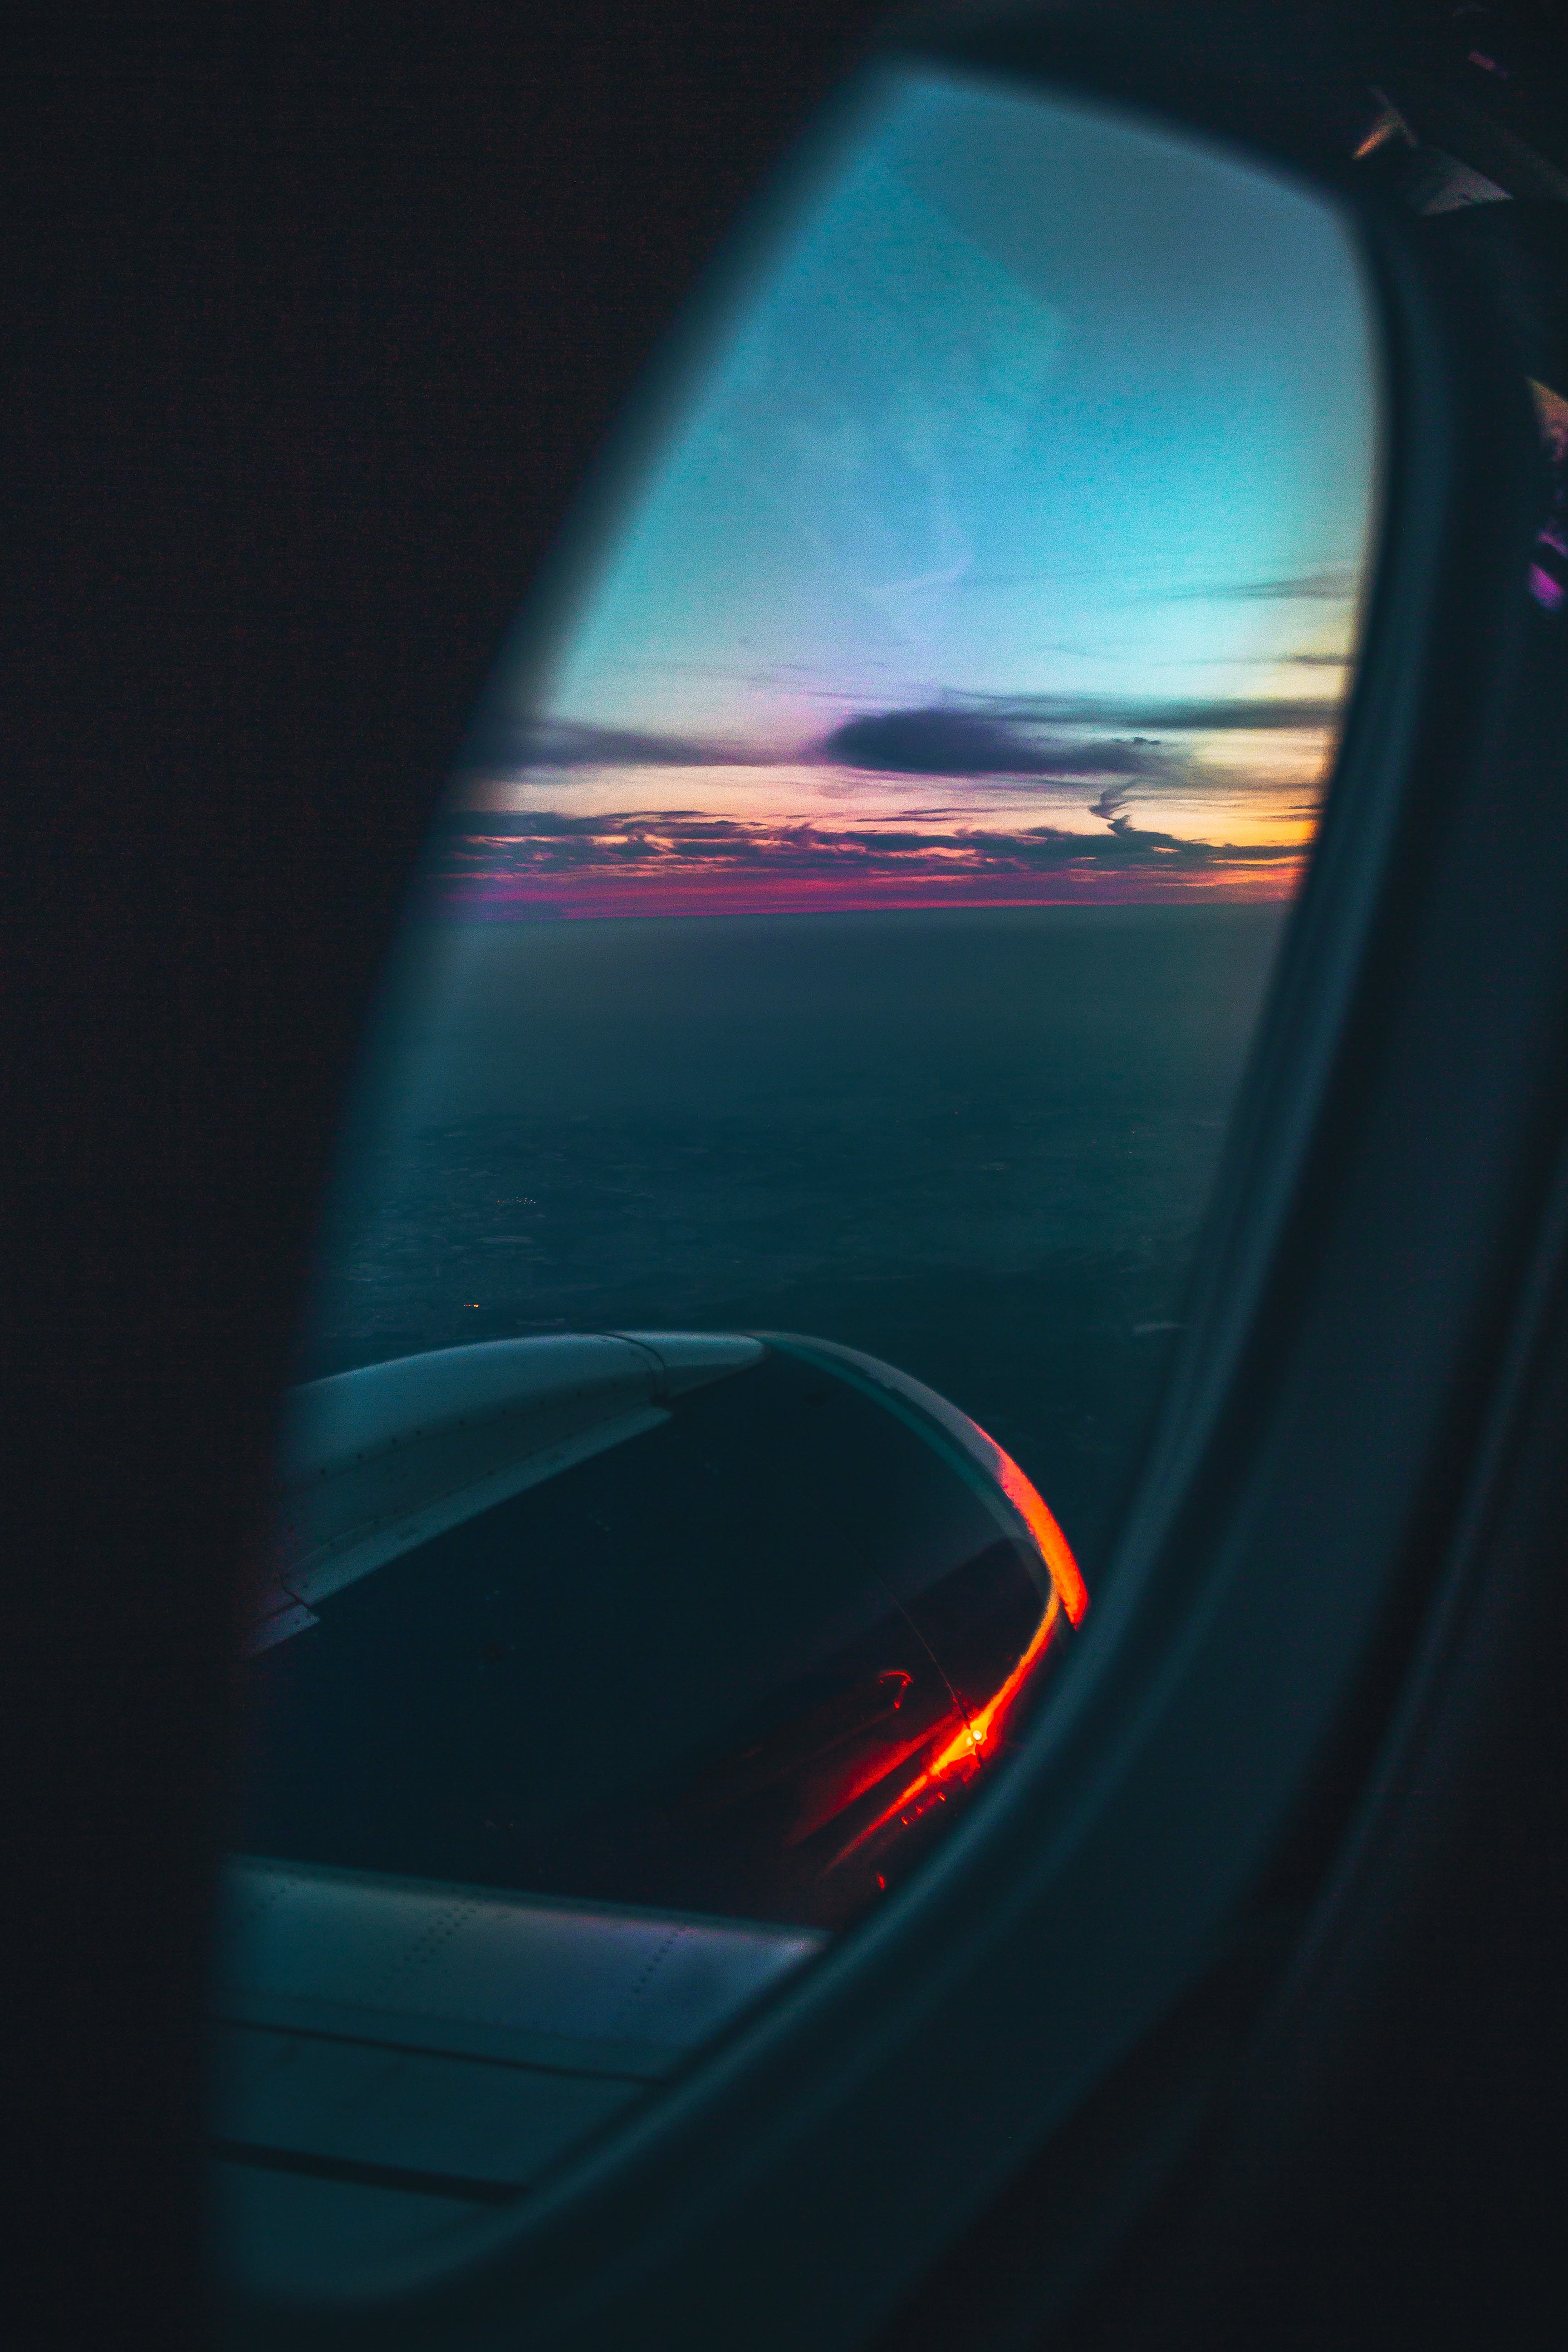 Shallow Focus Photography Of Airplane Window